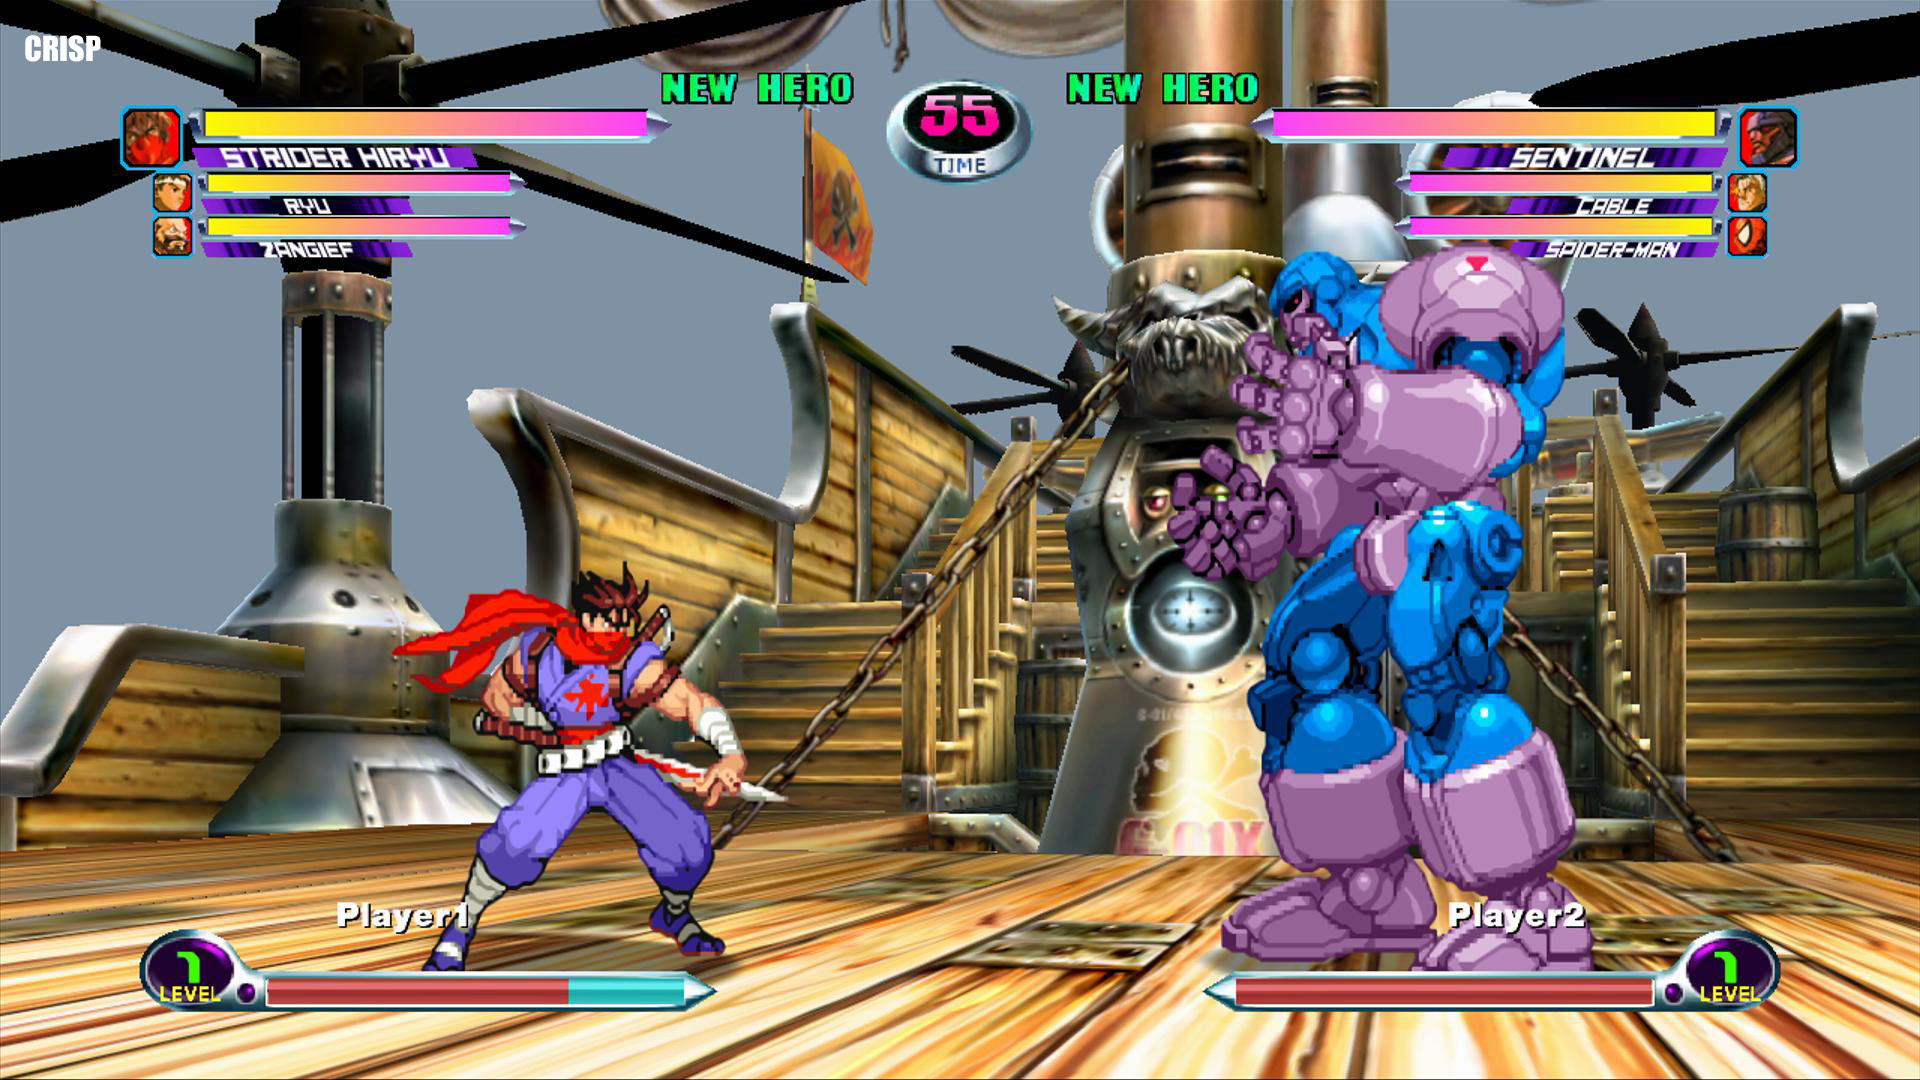 Marvel vs. Capcom 2 HD Sprites in Crisp rendering mode